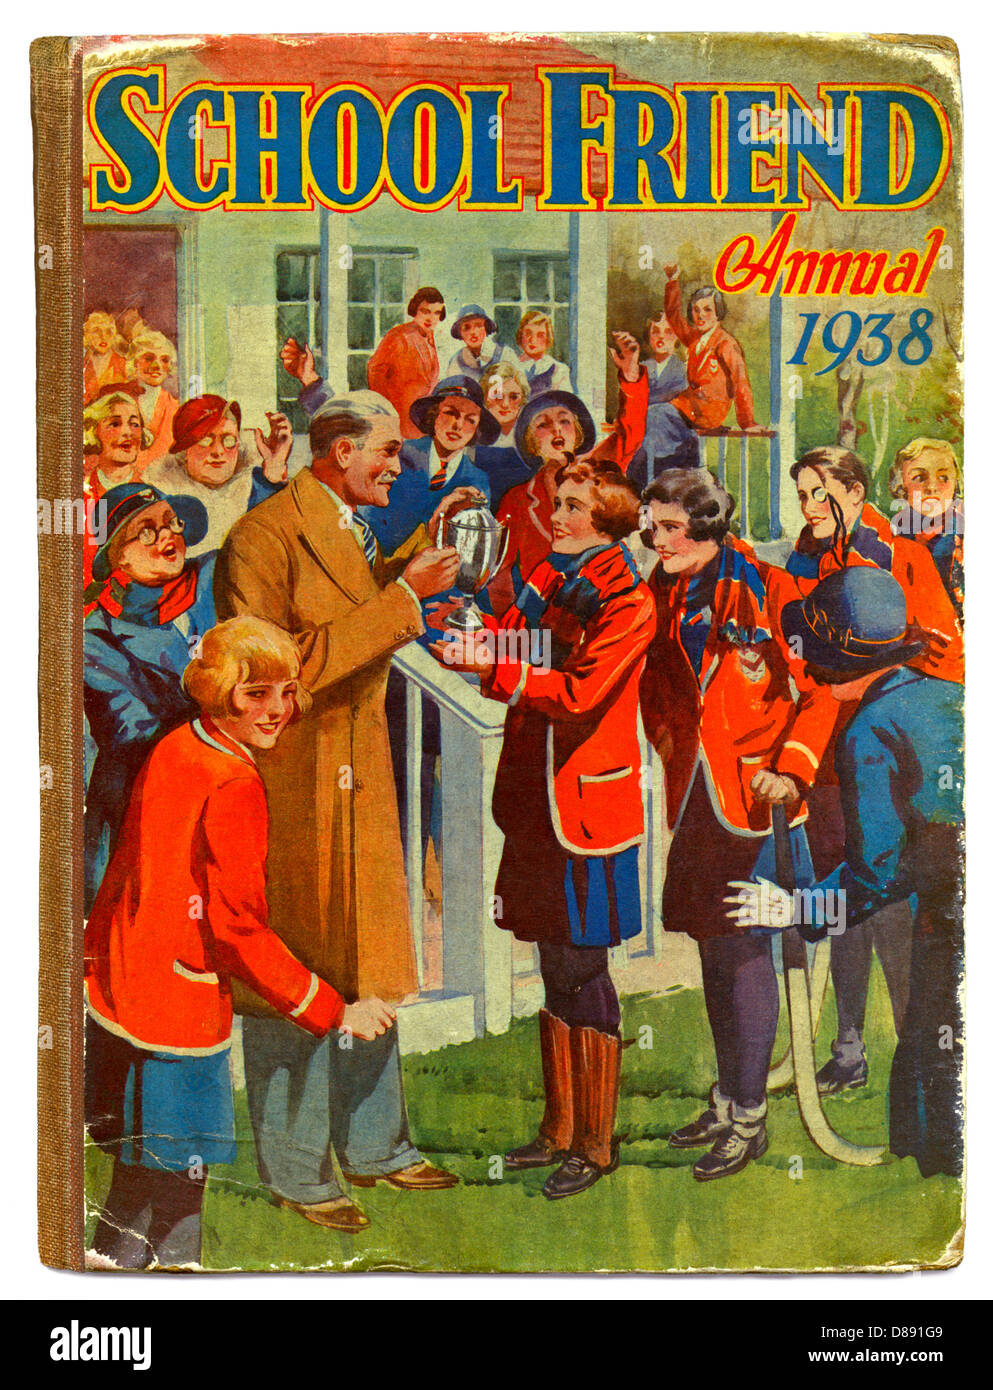 The School Friend girl's annual 1938 featured a cup for the winners of a hockey match at an exclusive school - Stock Image